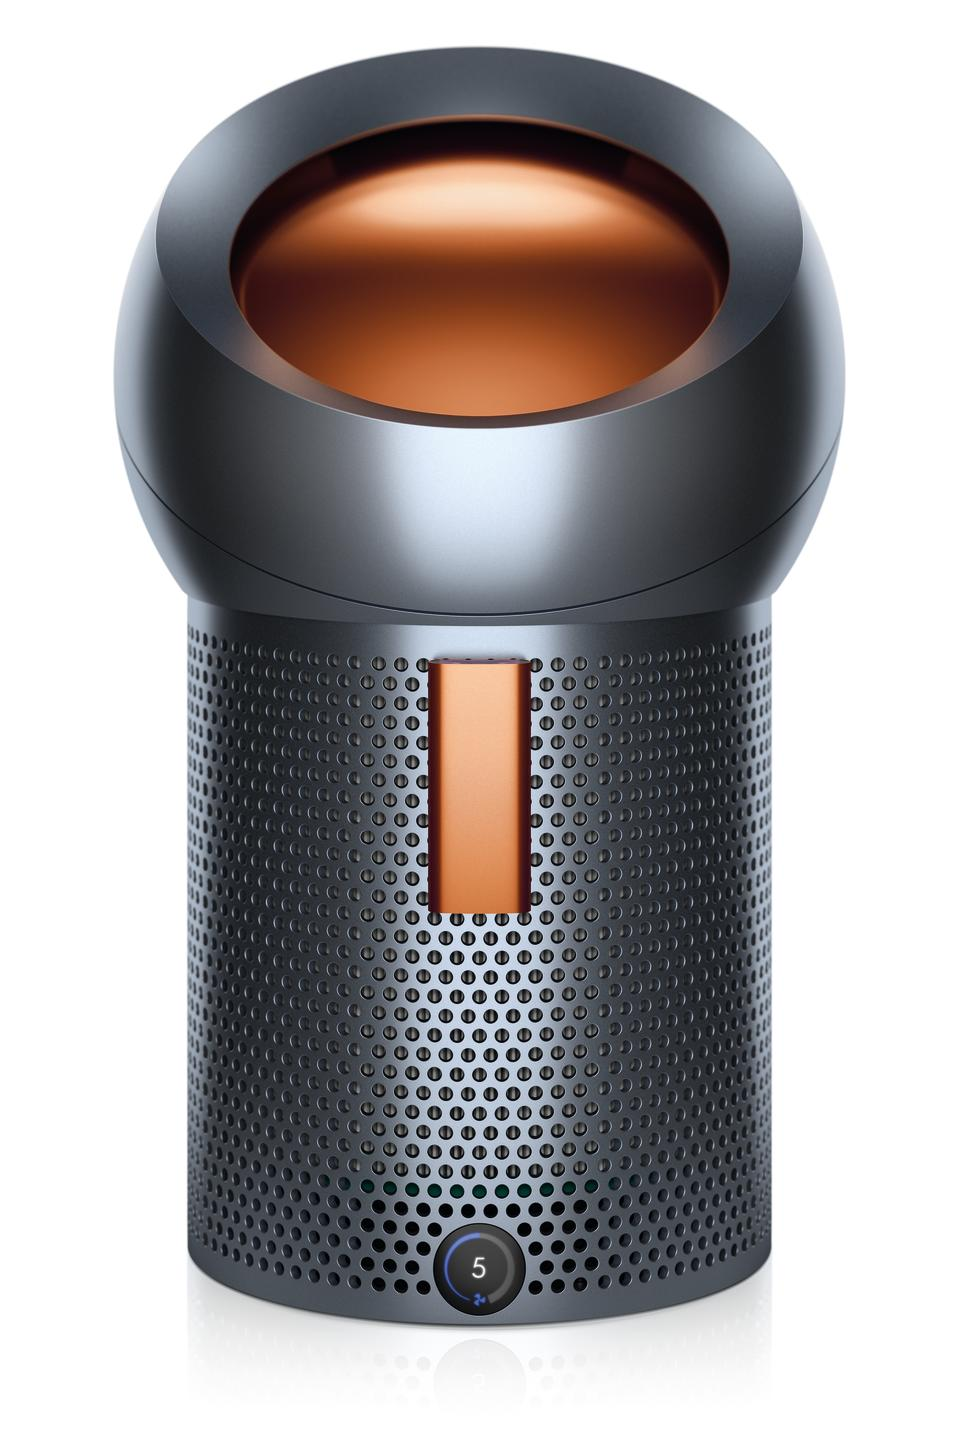 Dyson Pure Cool Me personal purifier fan